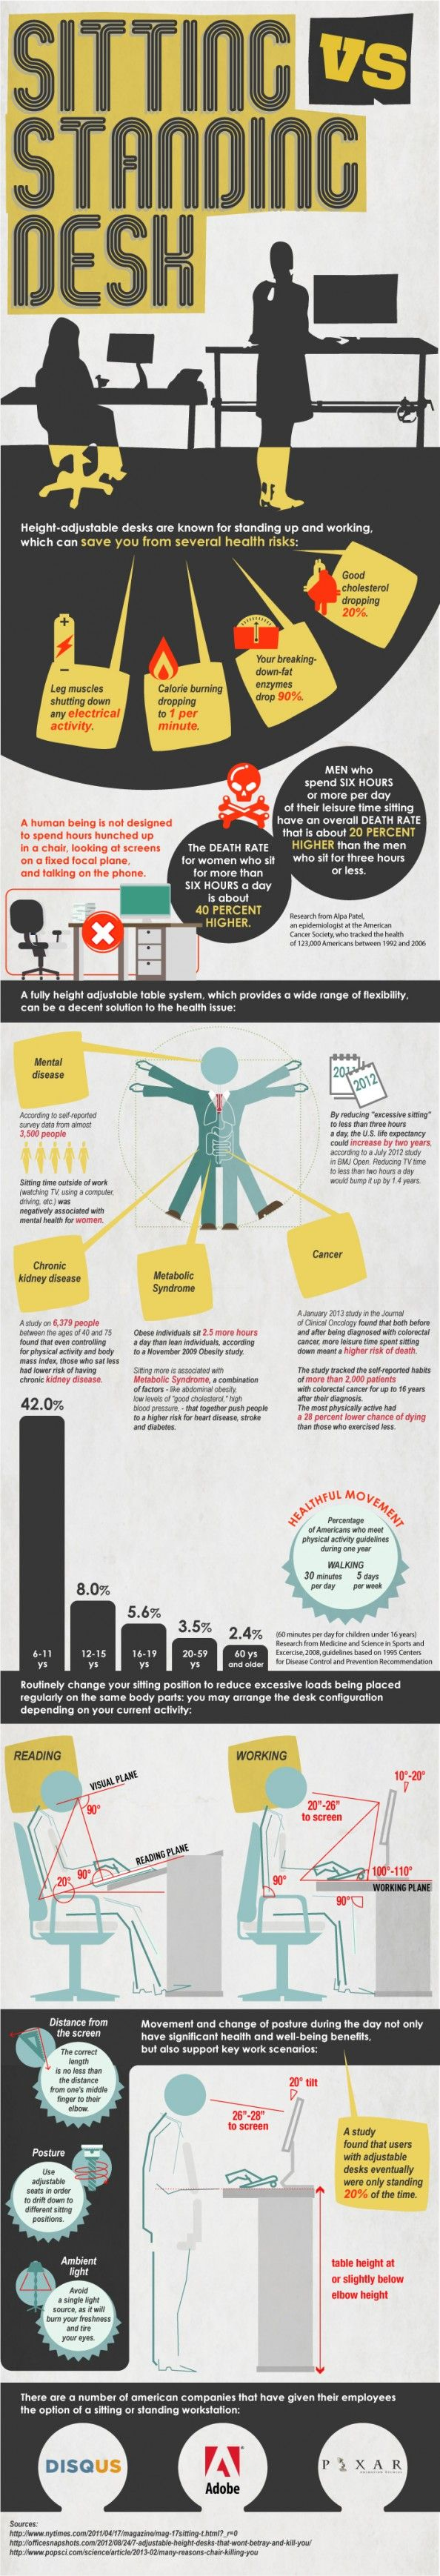 Compare The Health Benefits Of Sitting Vs Standing Desks